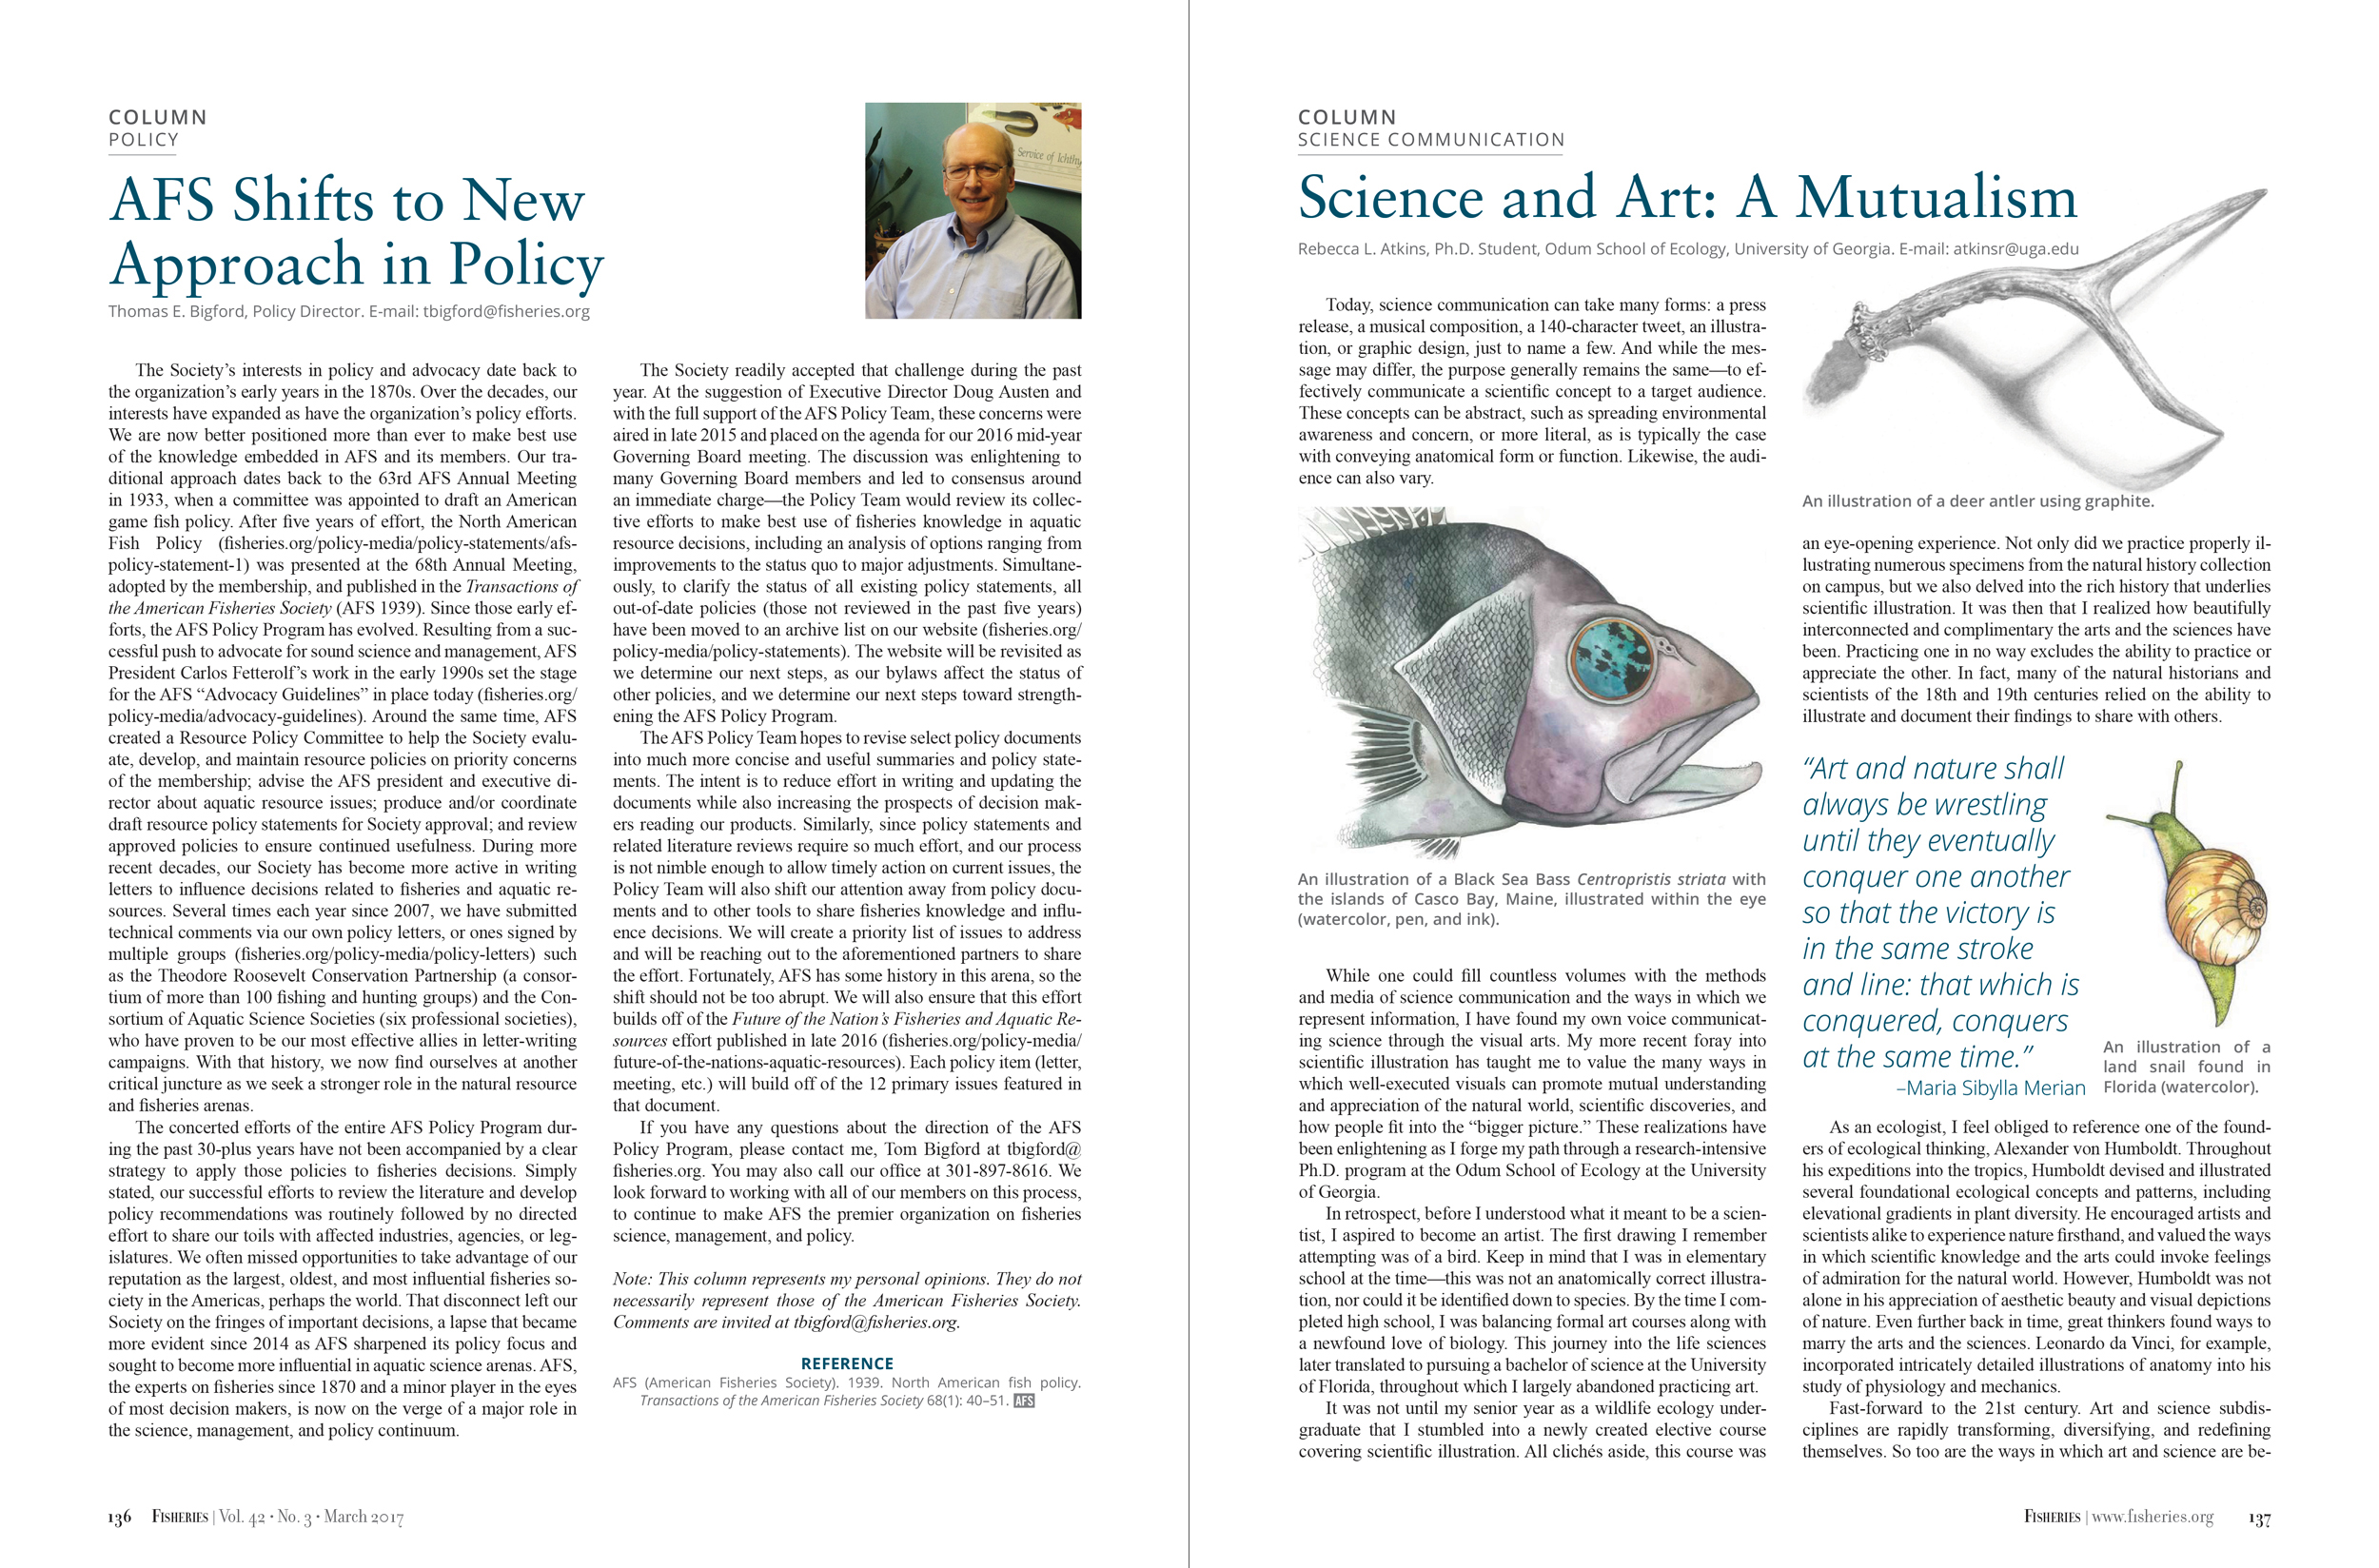 Fisheries Magazine, Interior pages (American Fisheries Society)